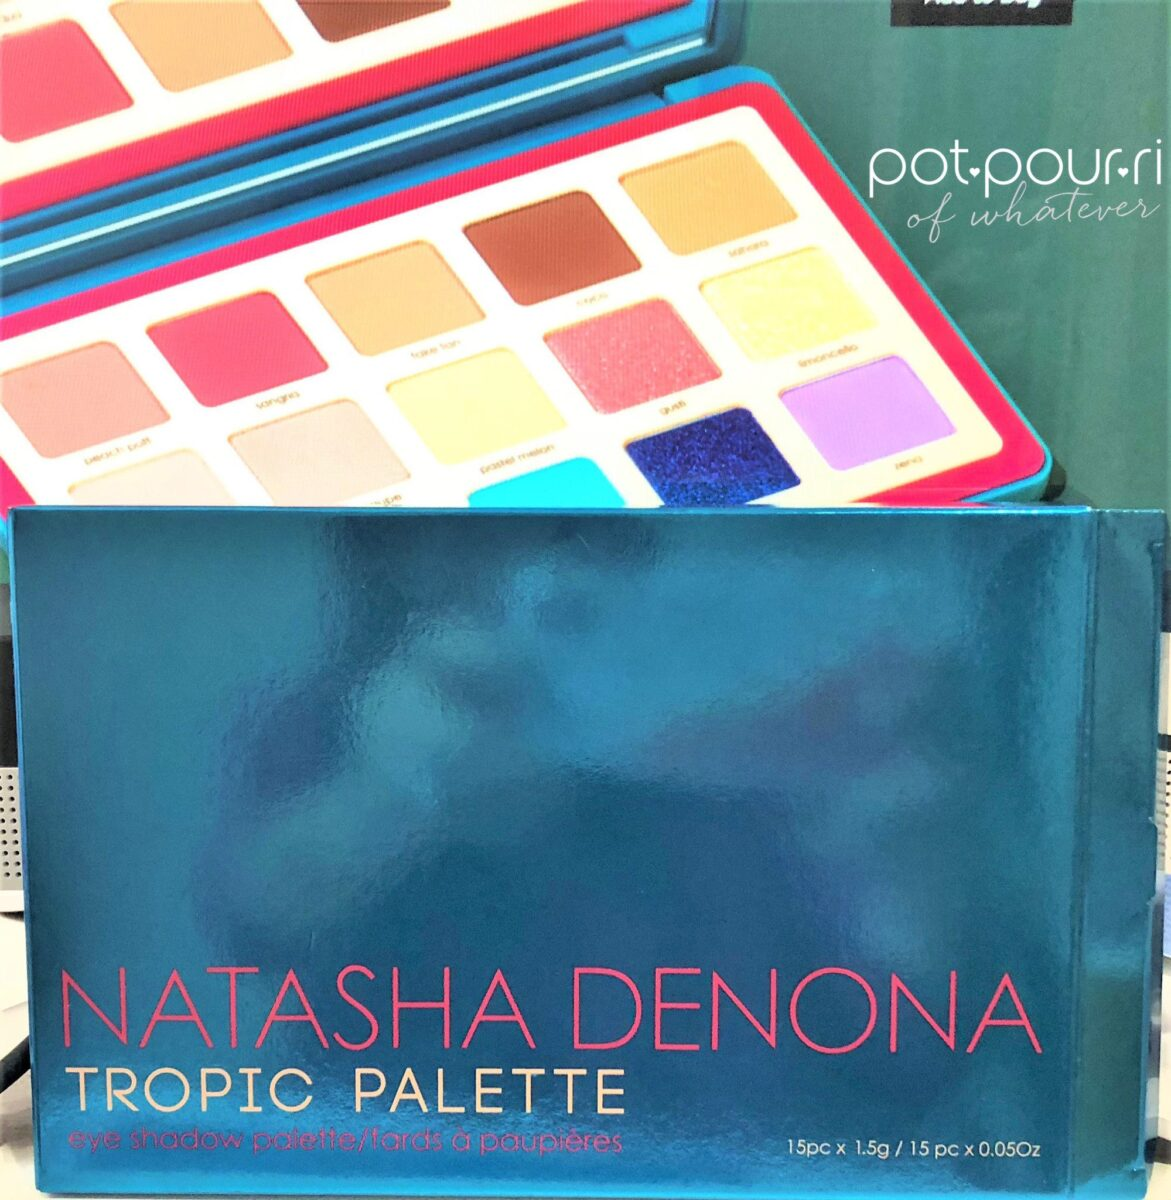 NATASHA-DENONA-TROPIC PALETTE PACKAGING FOIL BOX